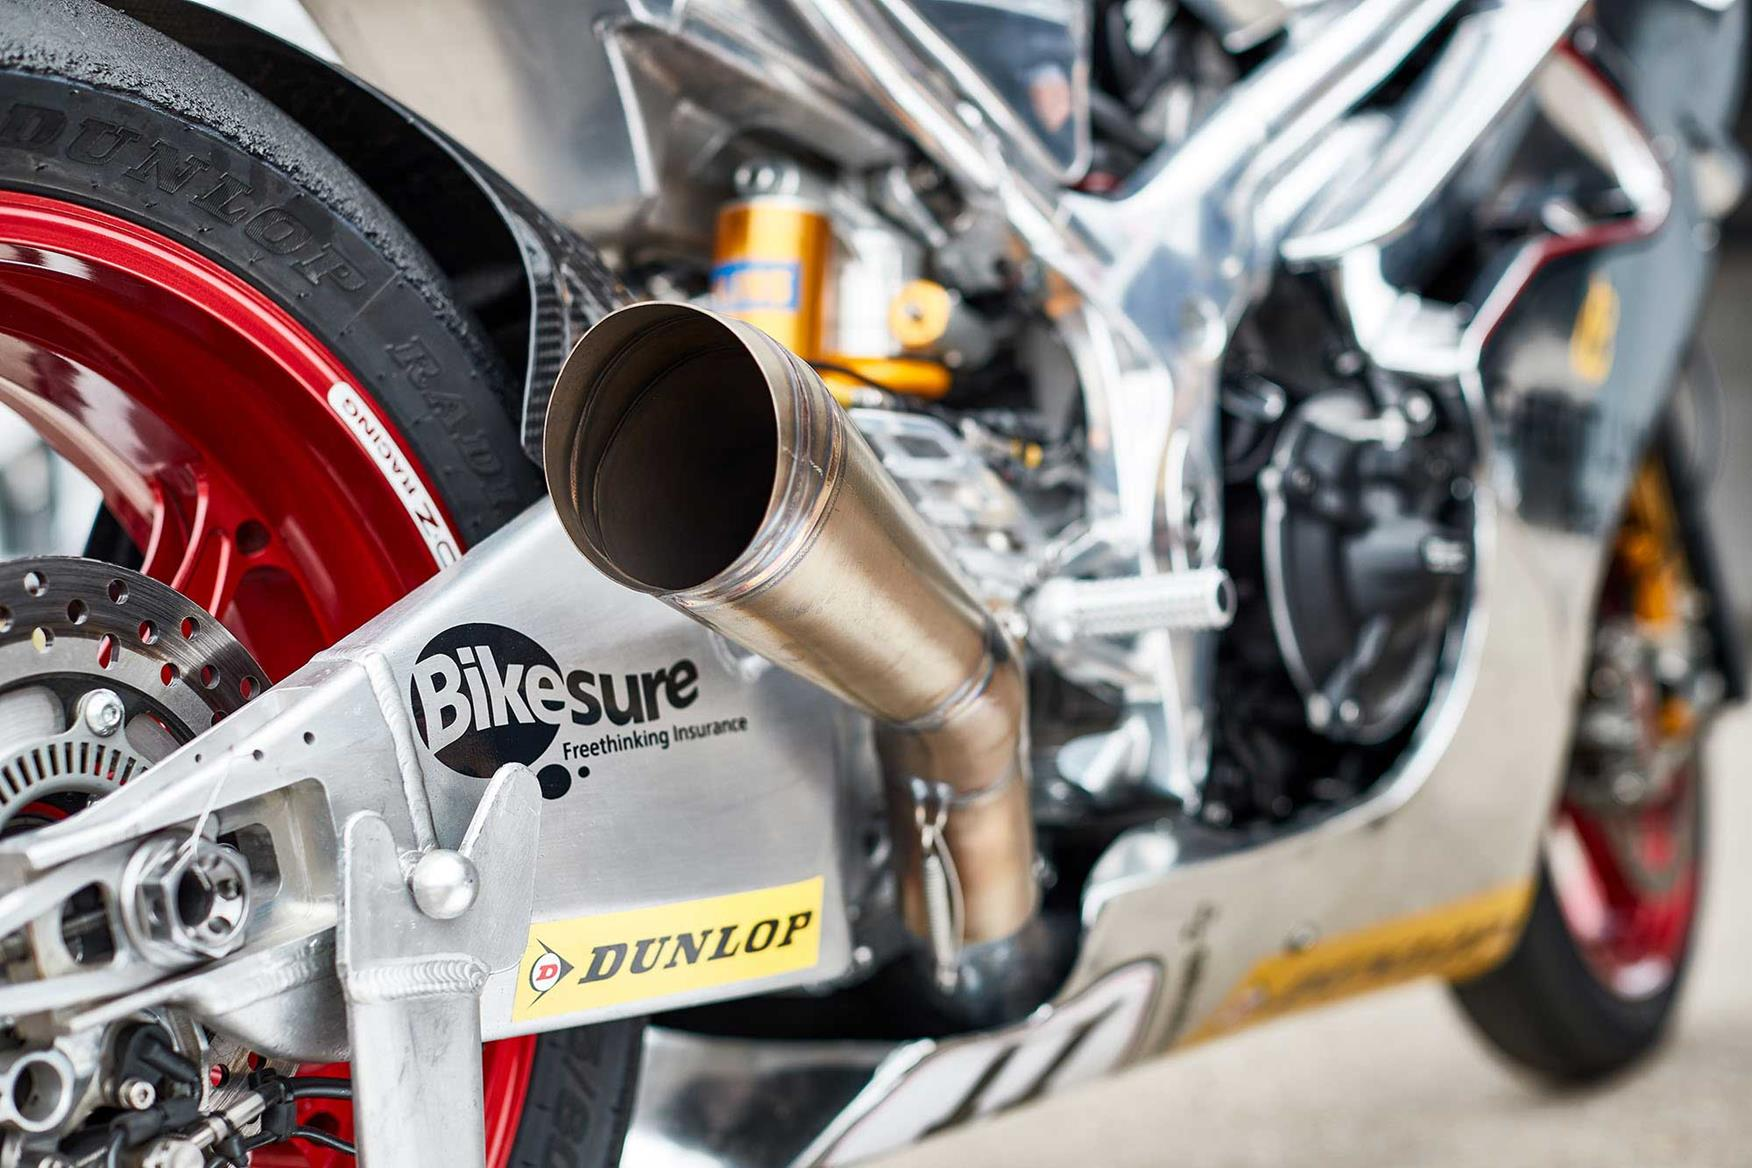 The race set up V4 Norton SG7 seemed pretty loud, until the Manx fired up